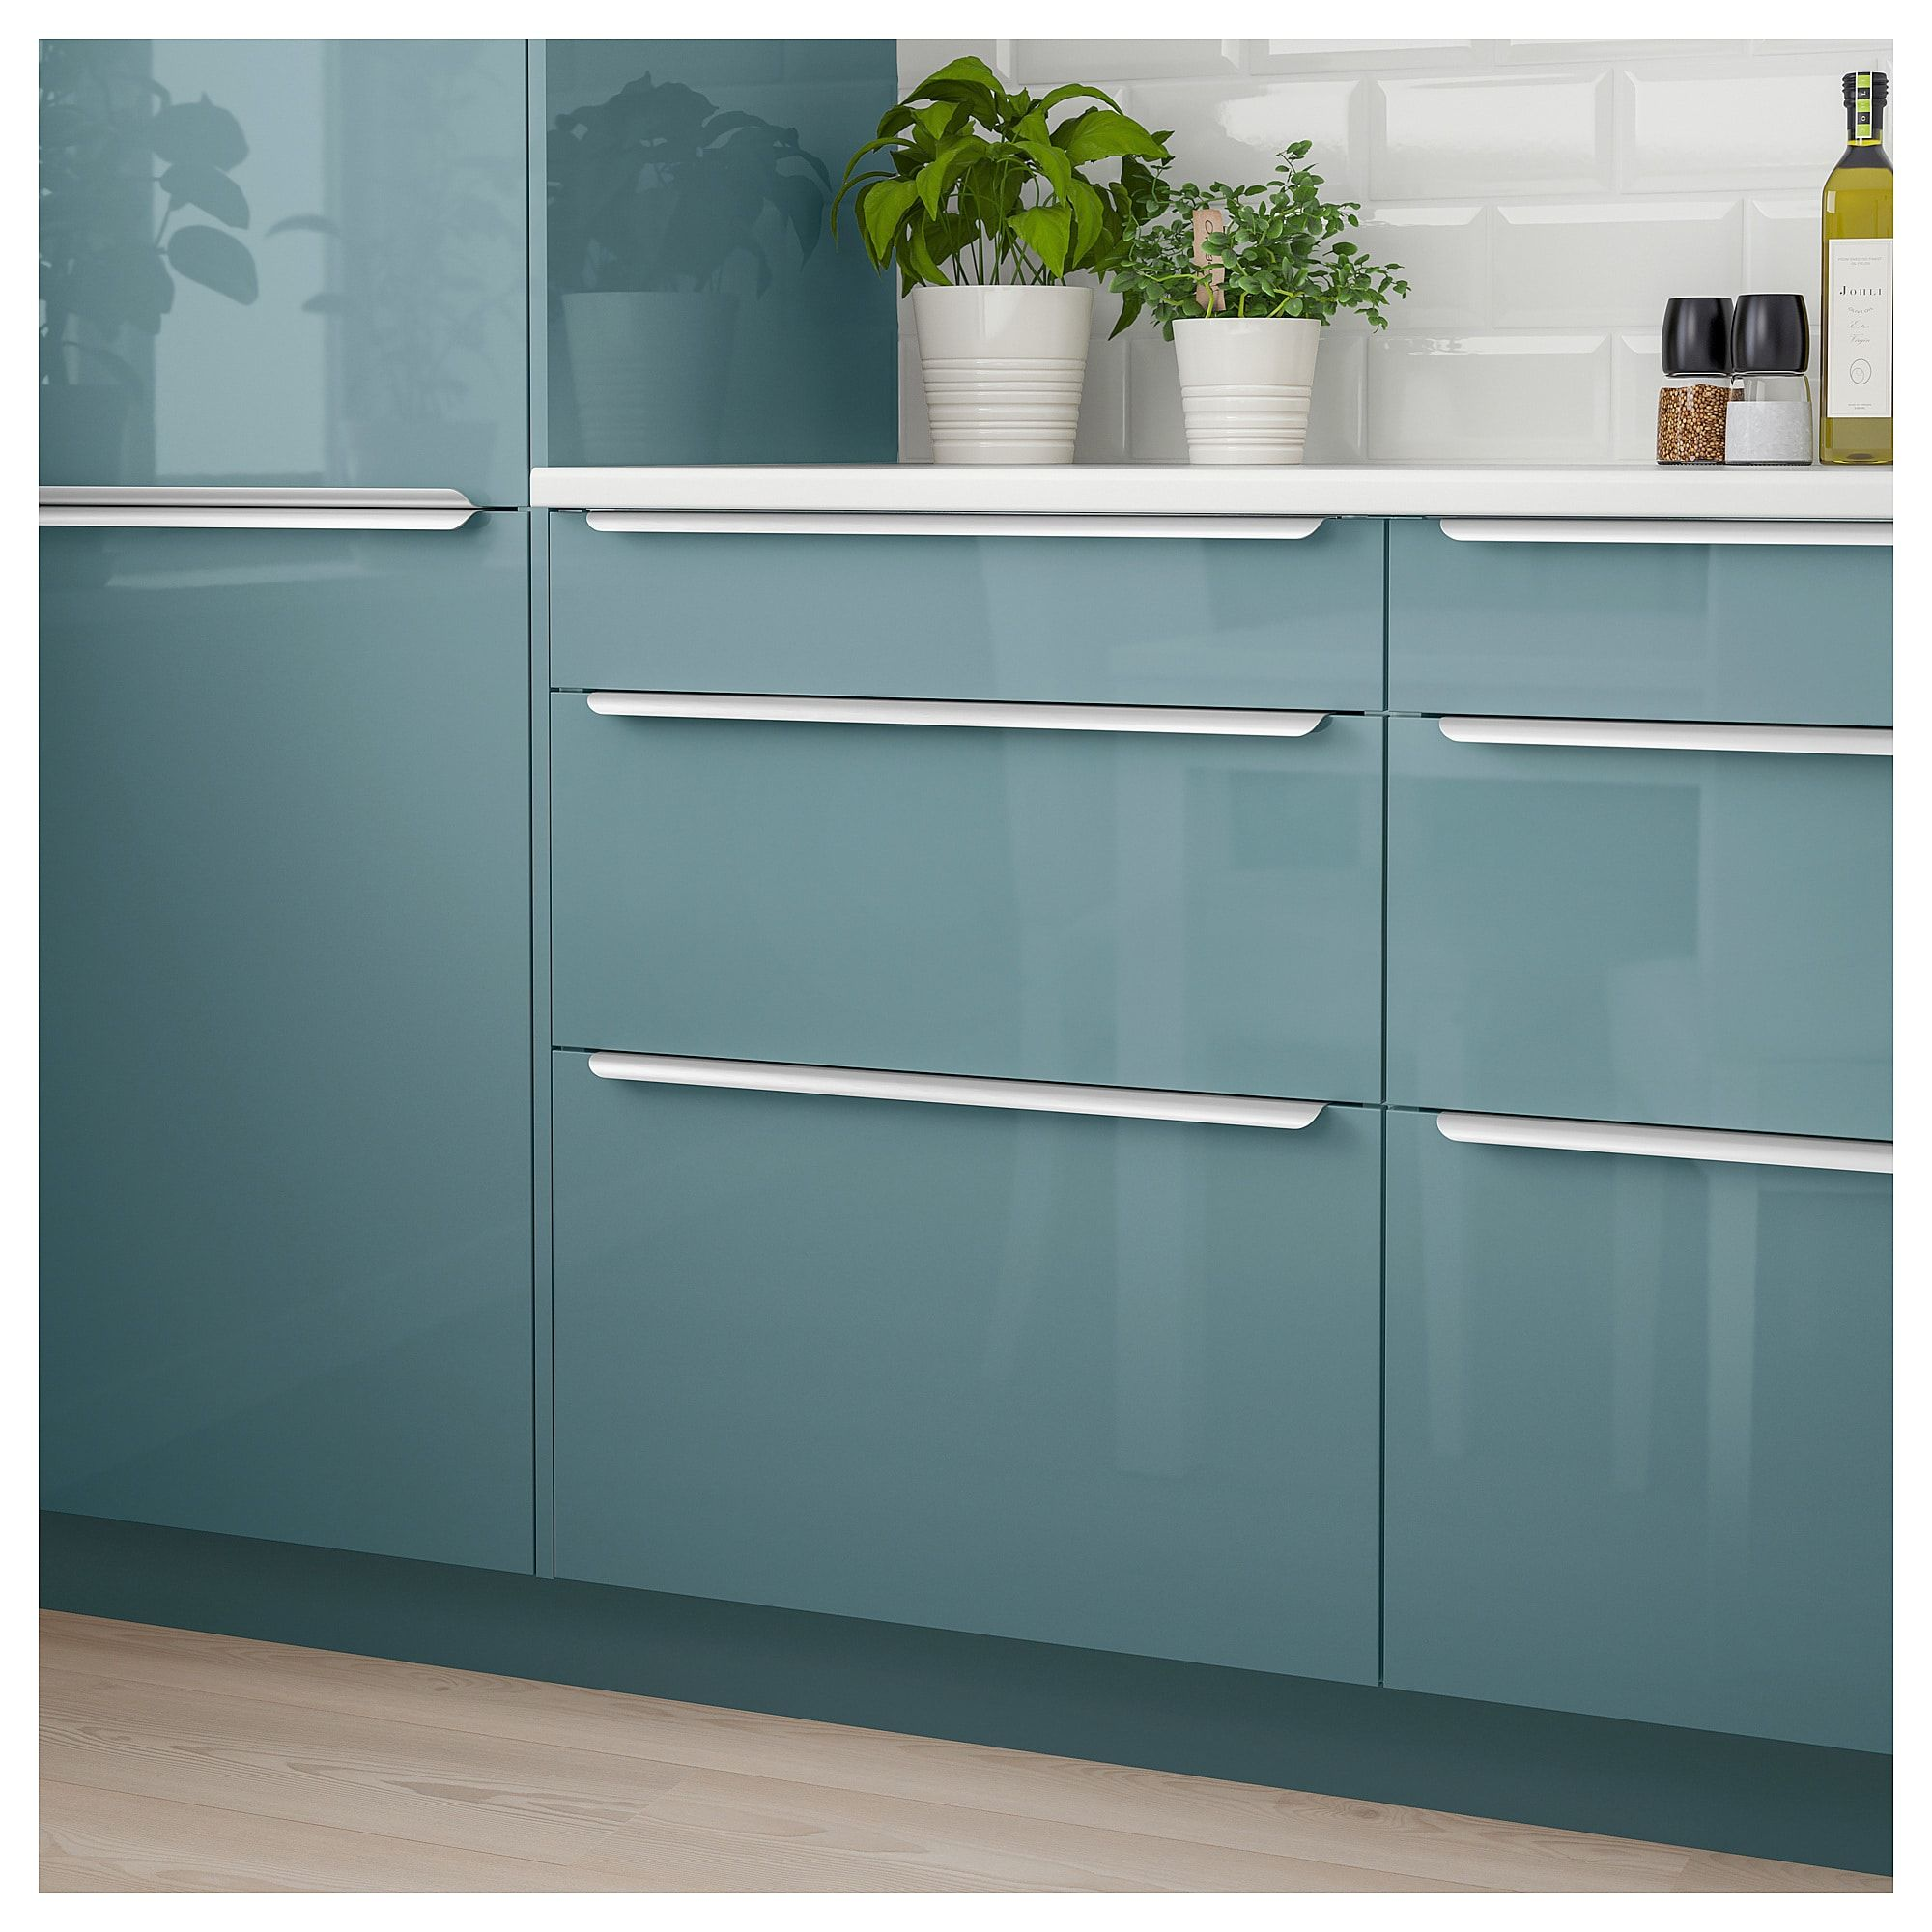 IKEA - KALLARP Drawer front high gloss gray-turquoise images